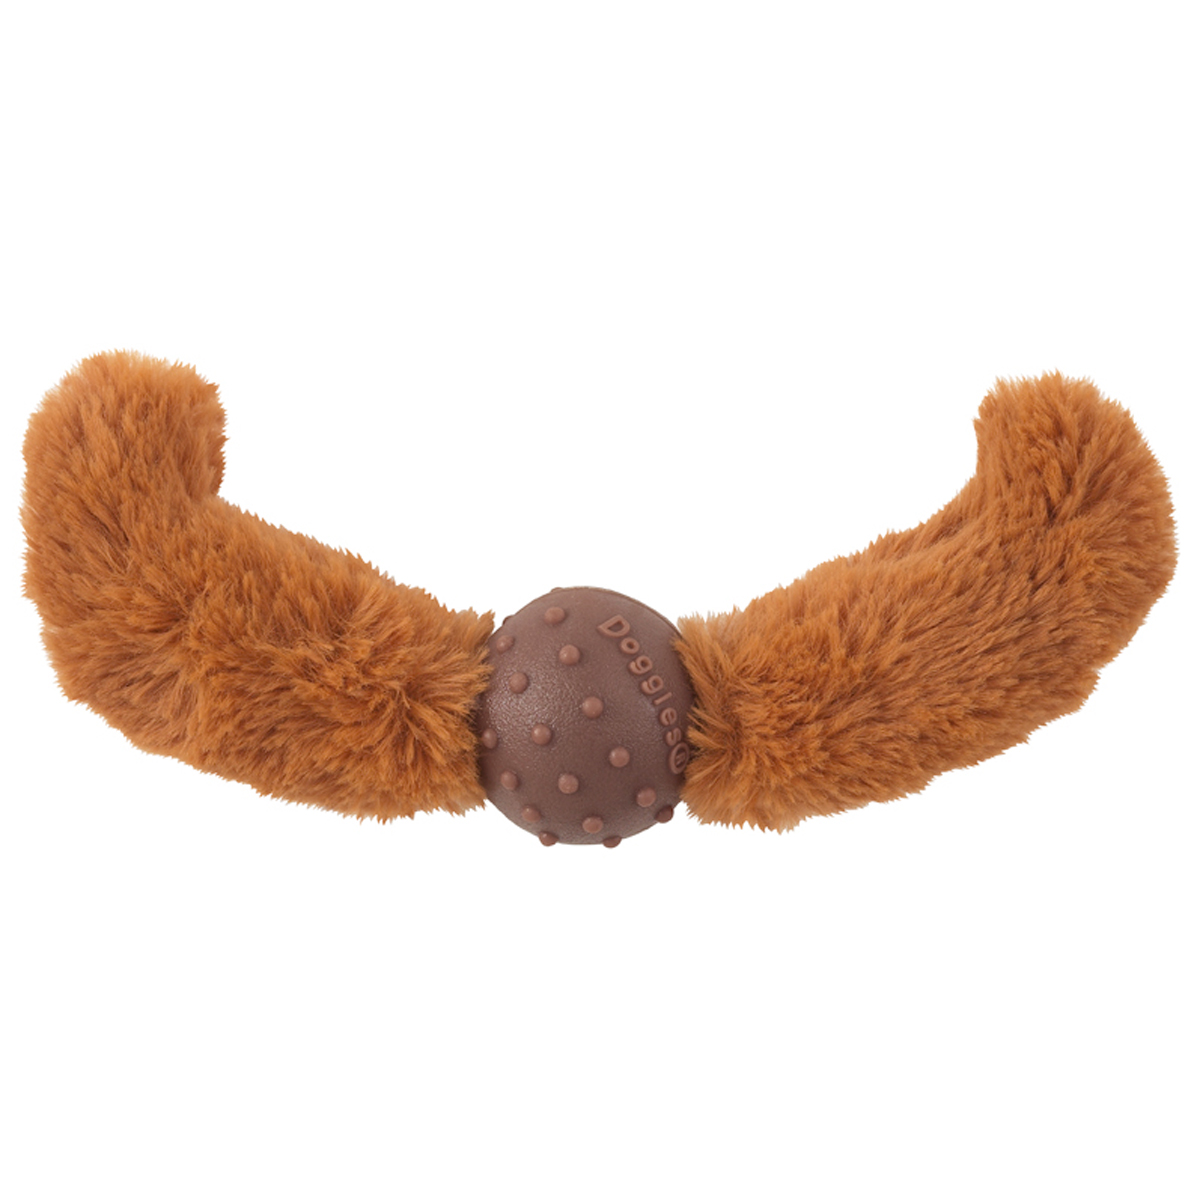 Doggles Mustache Dog Toy - Rust Straight